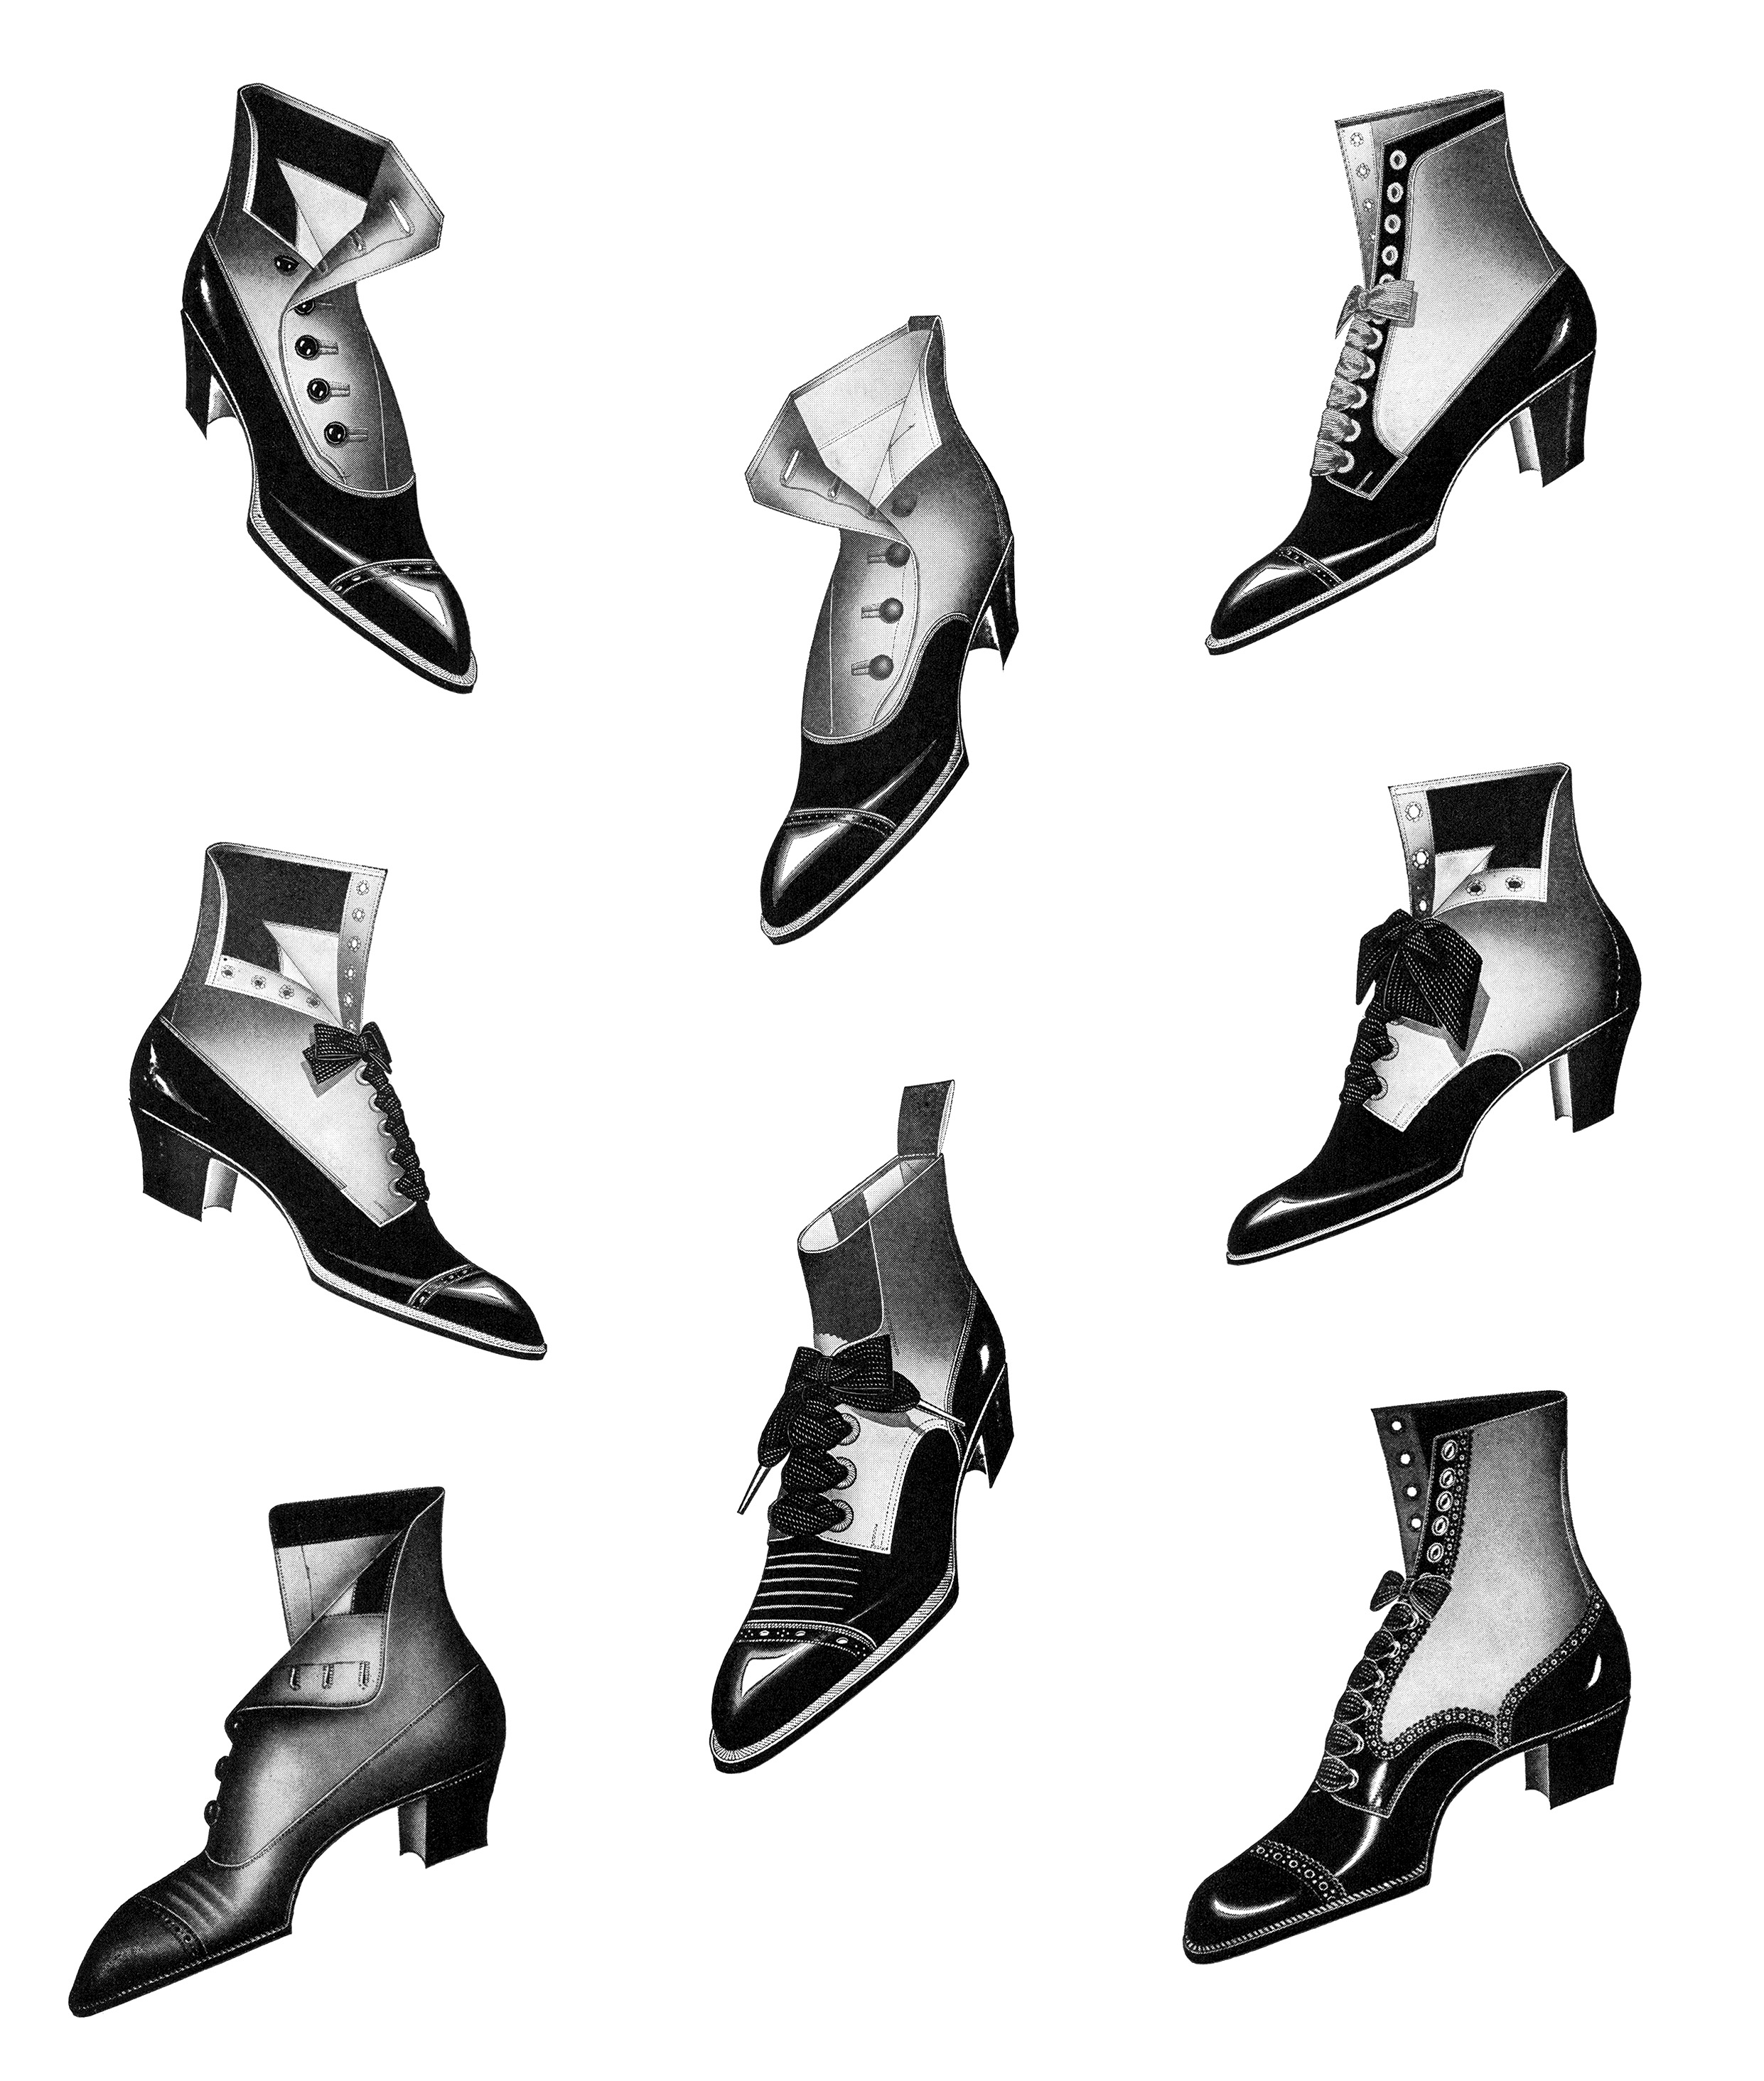 Vintage boot clipart picture download Free Victorian Boot Cliparts, Download Free Clip Art, Free ... picture download